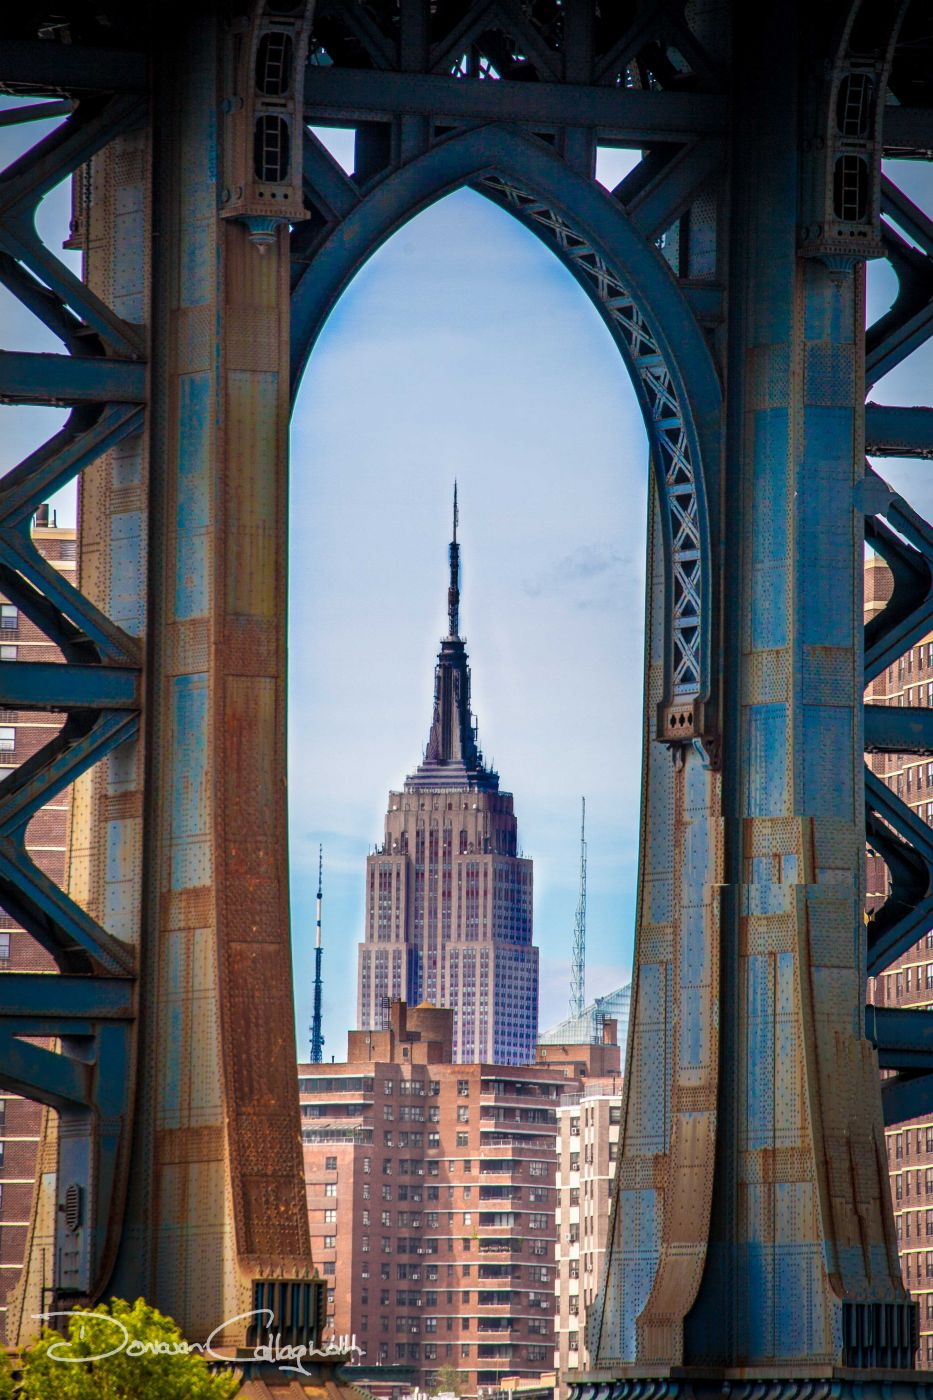 Manhattan bridge & Empire State building New York, USA